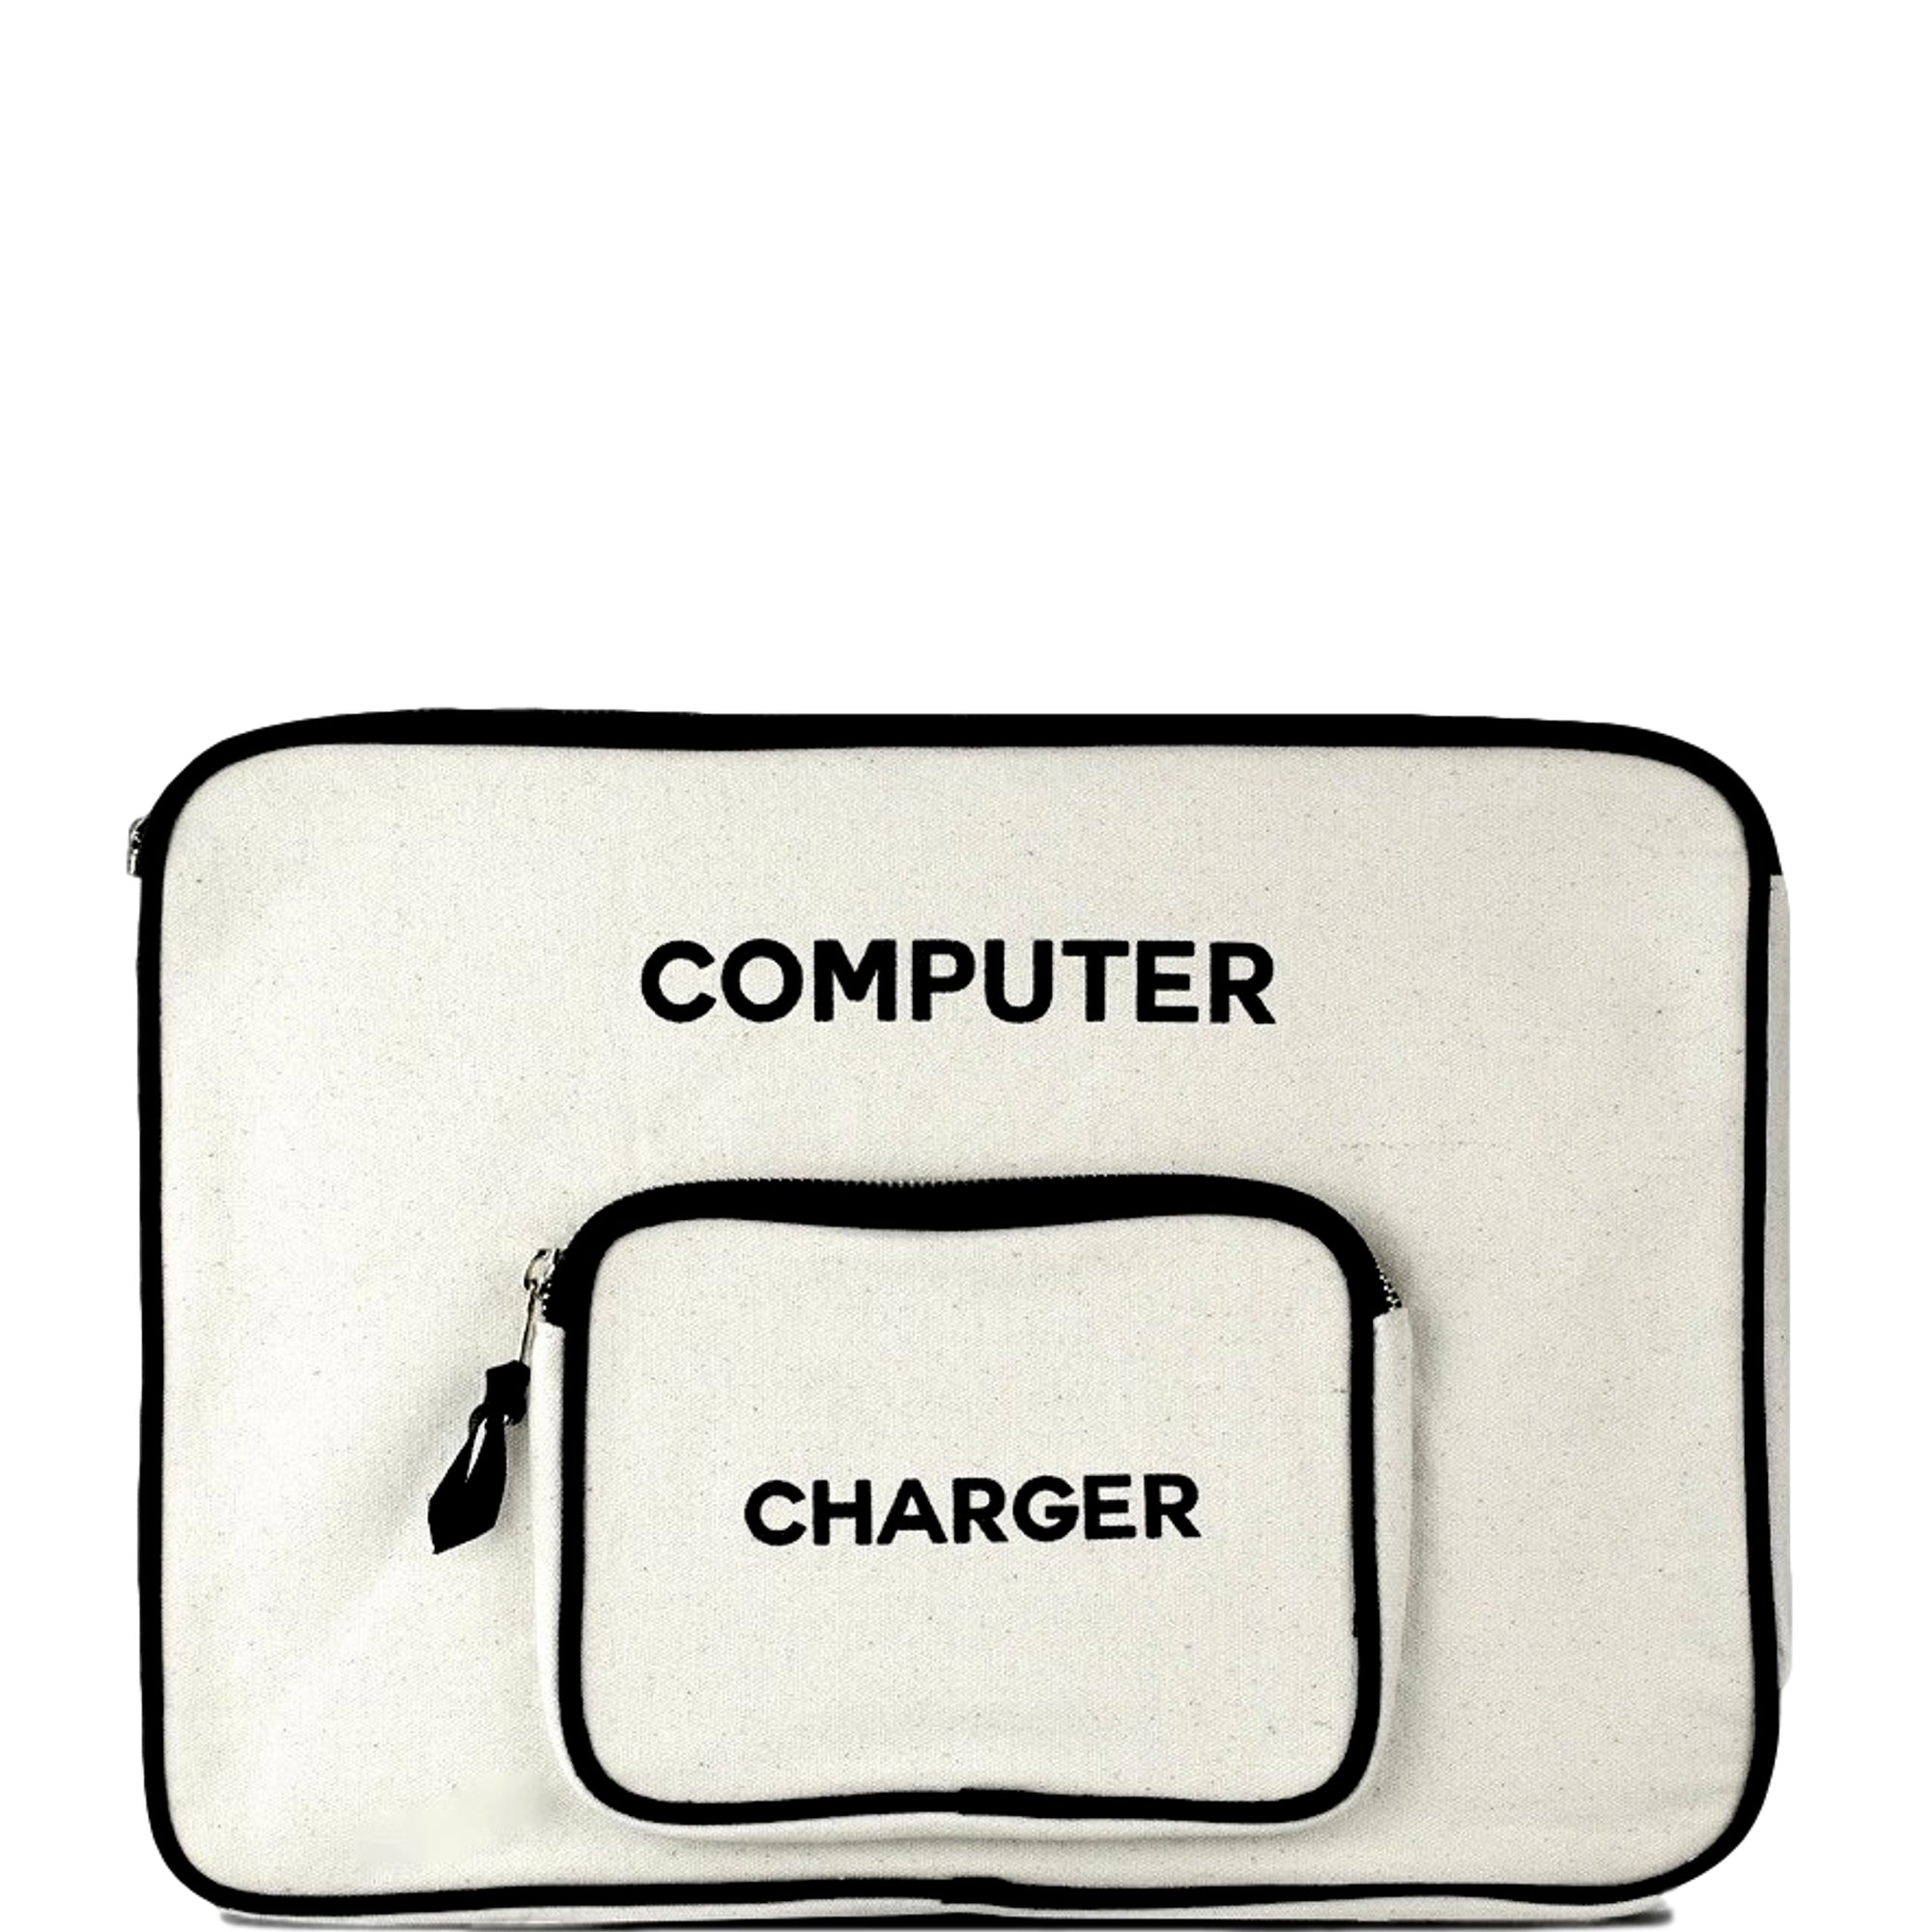 Computer case in white with an extra pocket for your charger attached on the front.